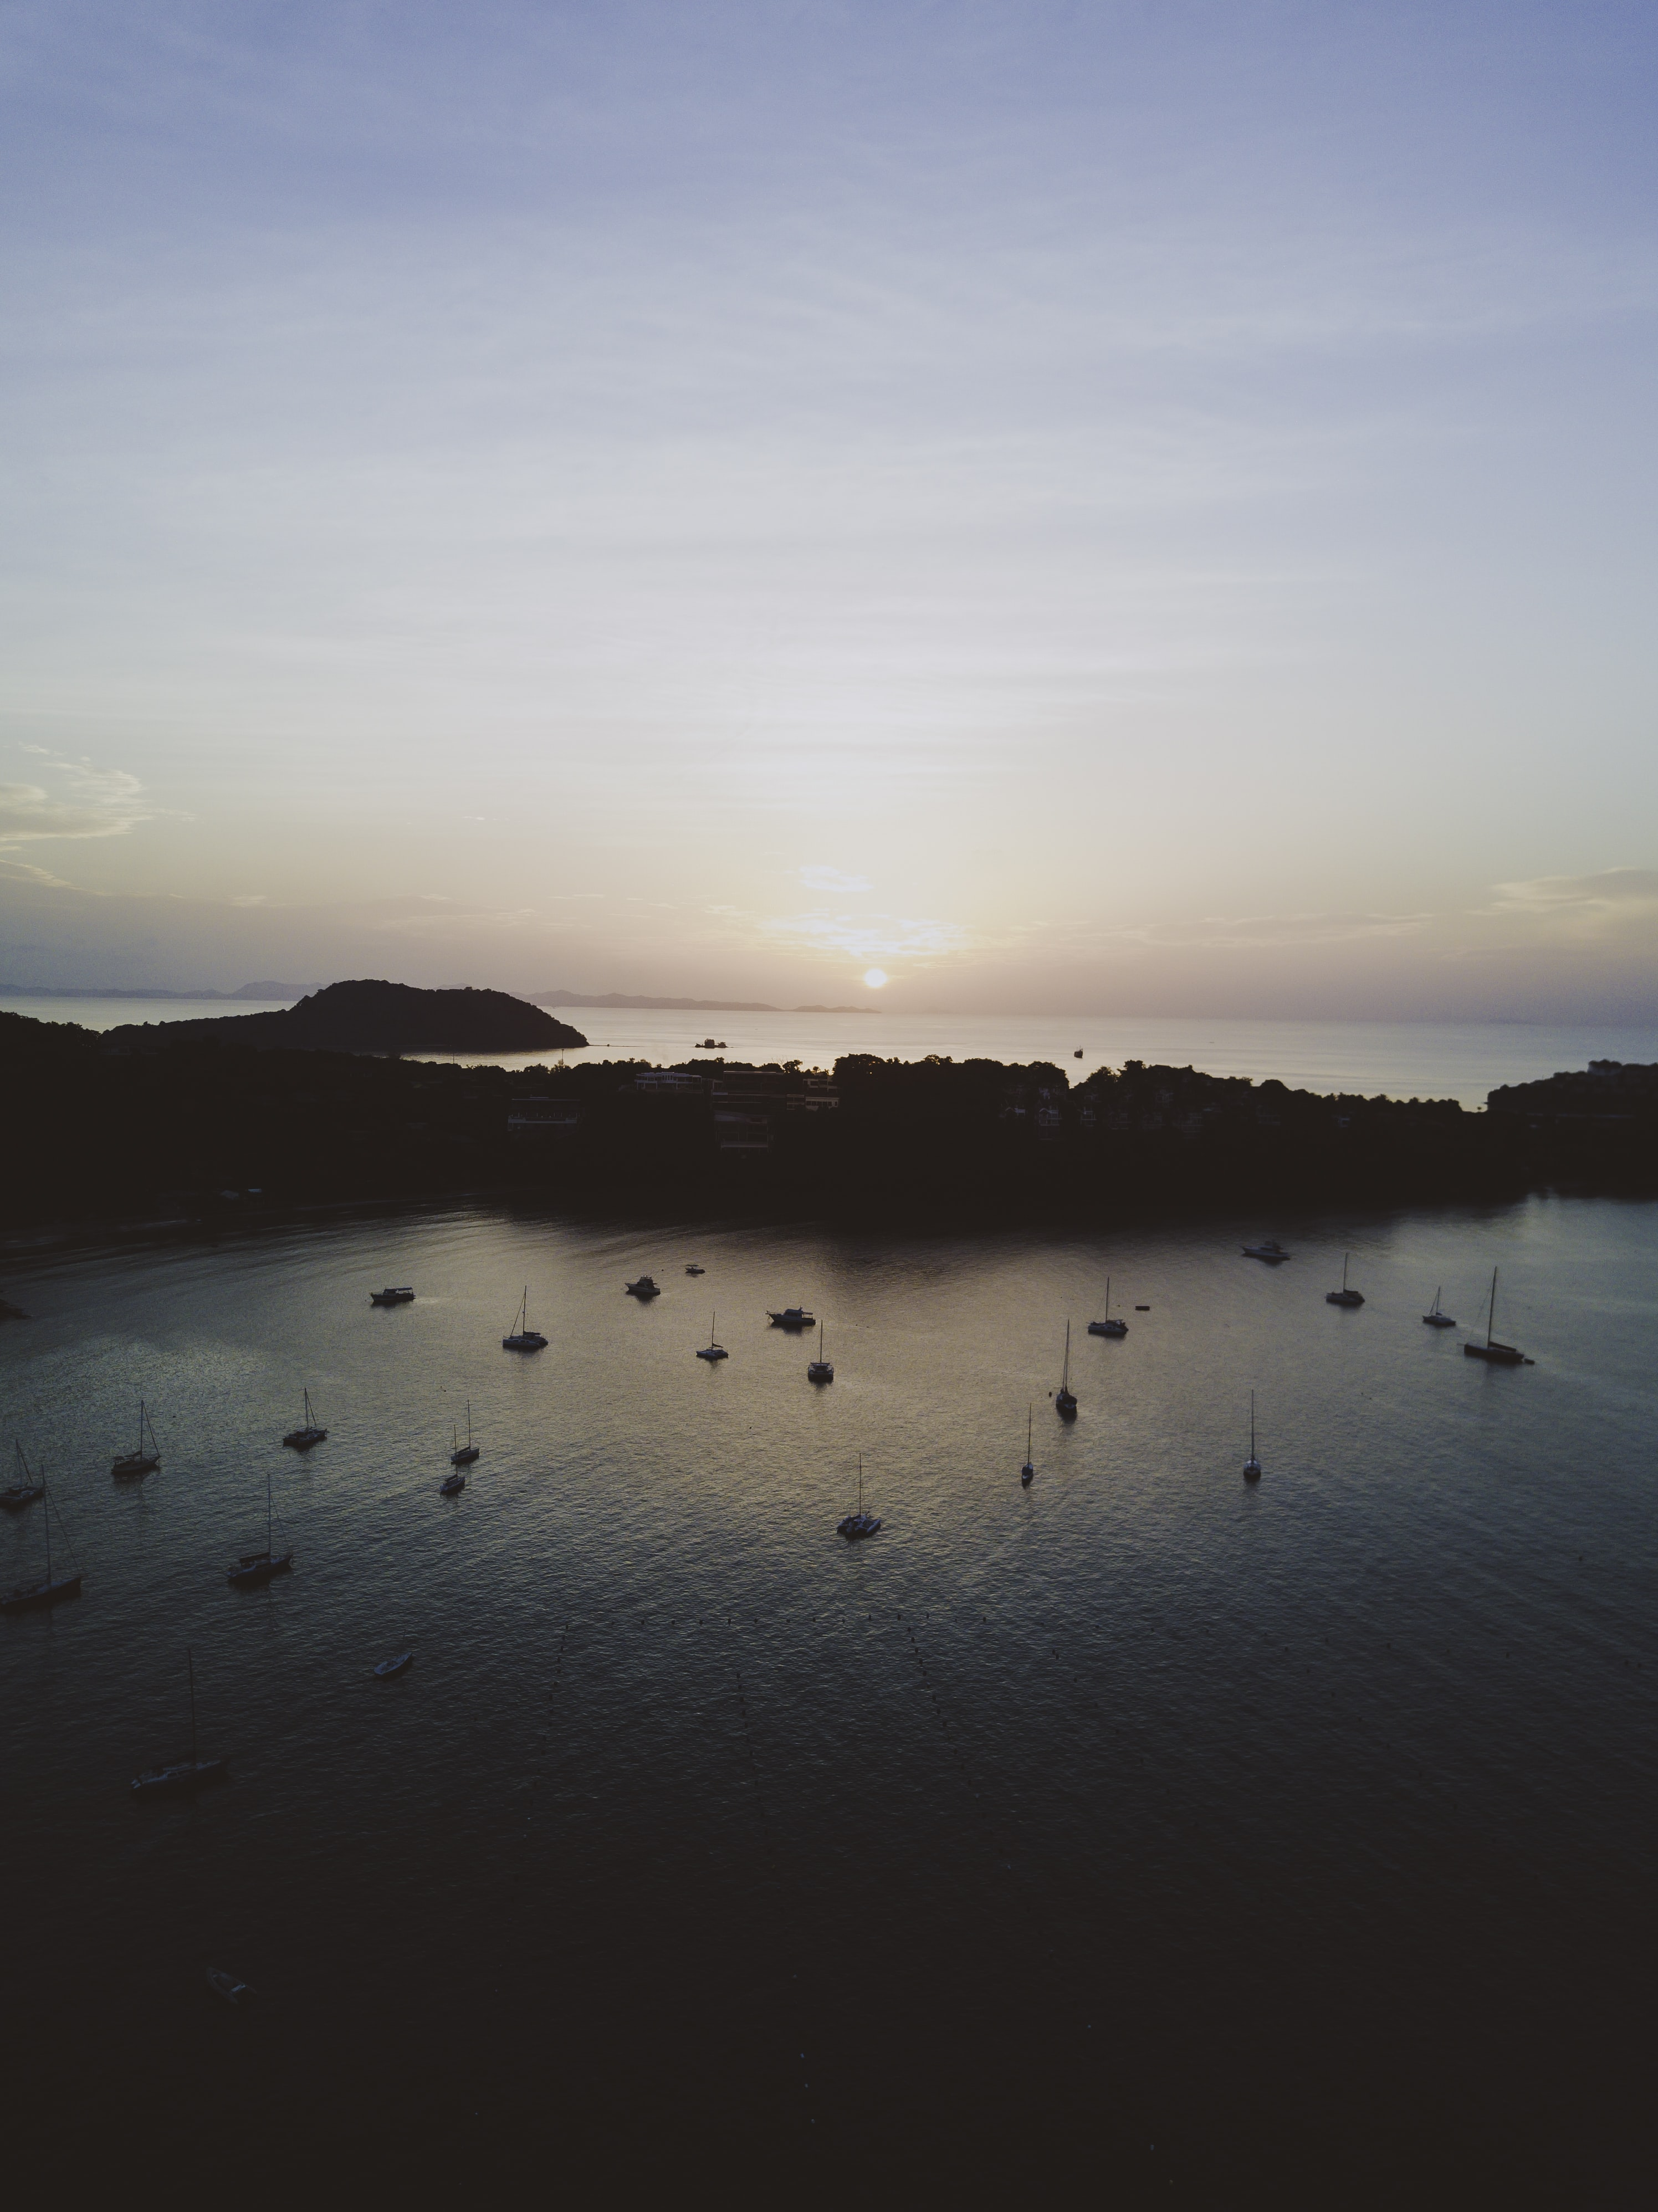 aerial view of land on body of water